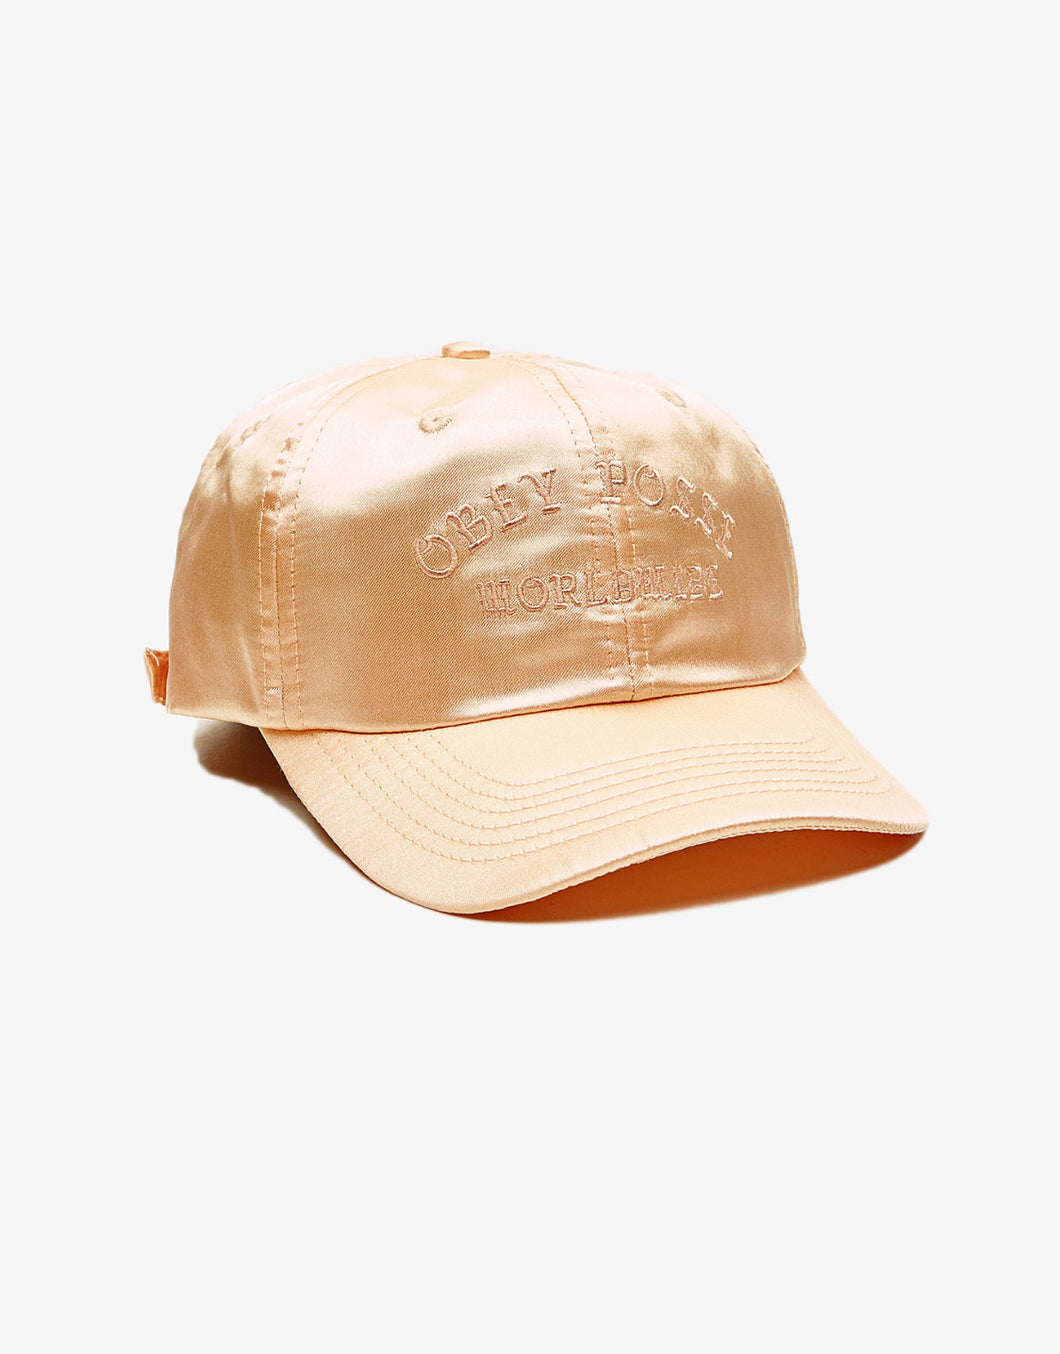 OBEY Clothing Midtown cap